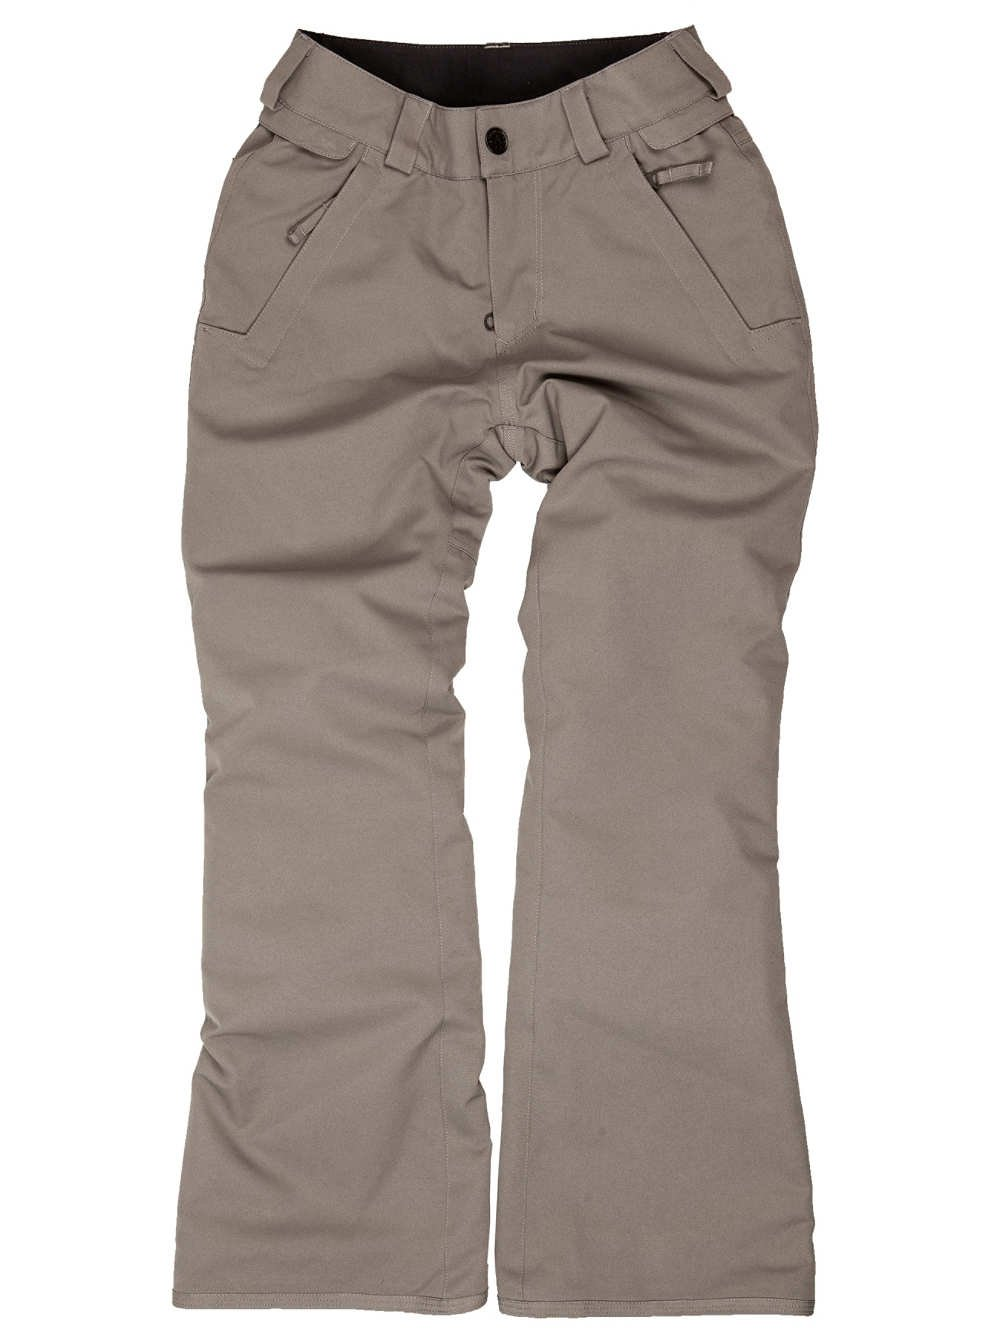 Volcom Big Boys' Freakin Snow Chino Pant, Charcoal, L by Volcom